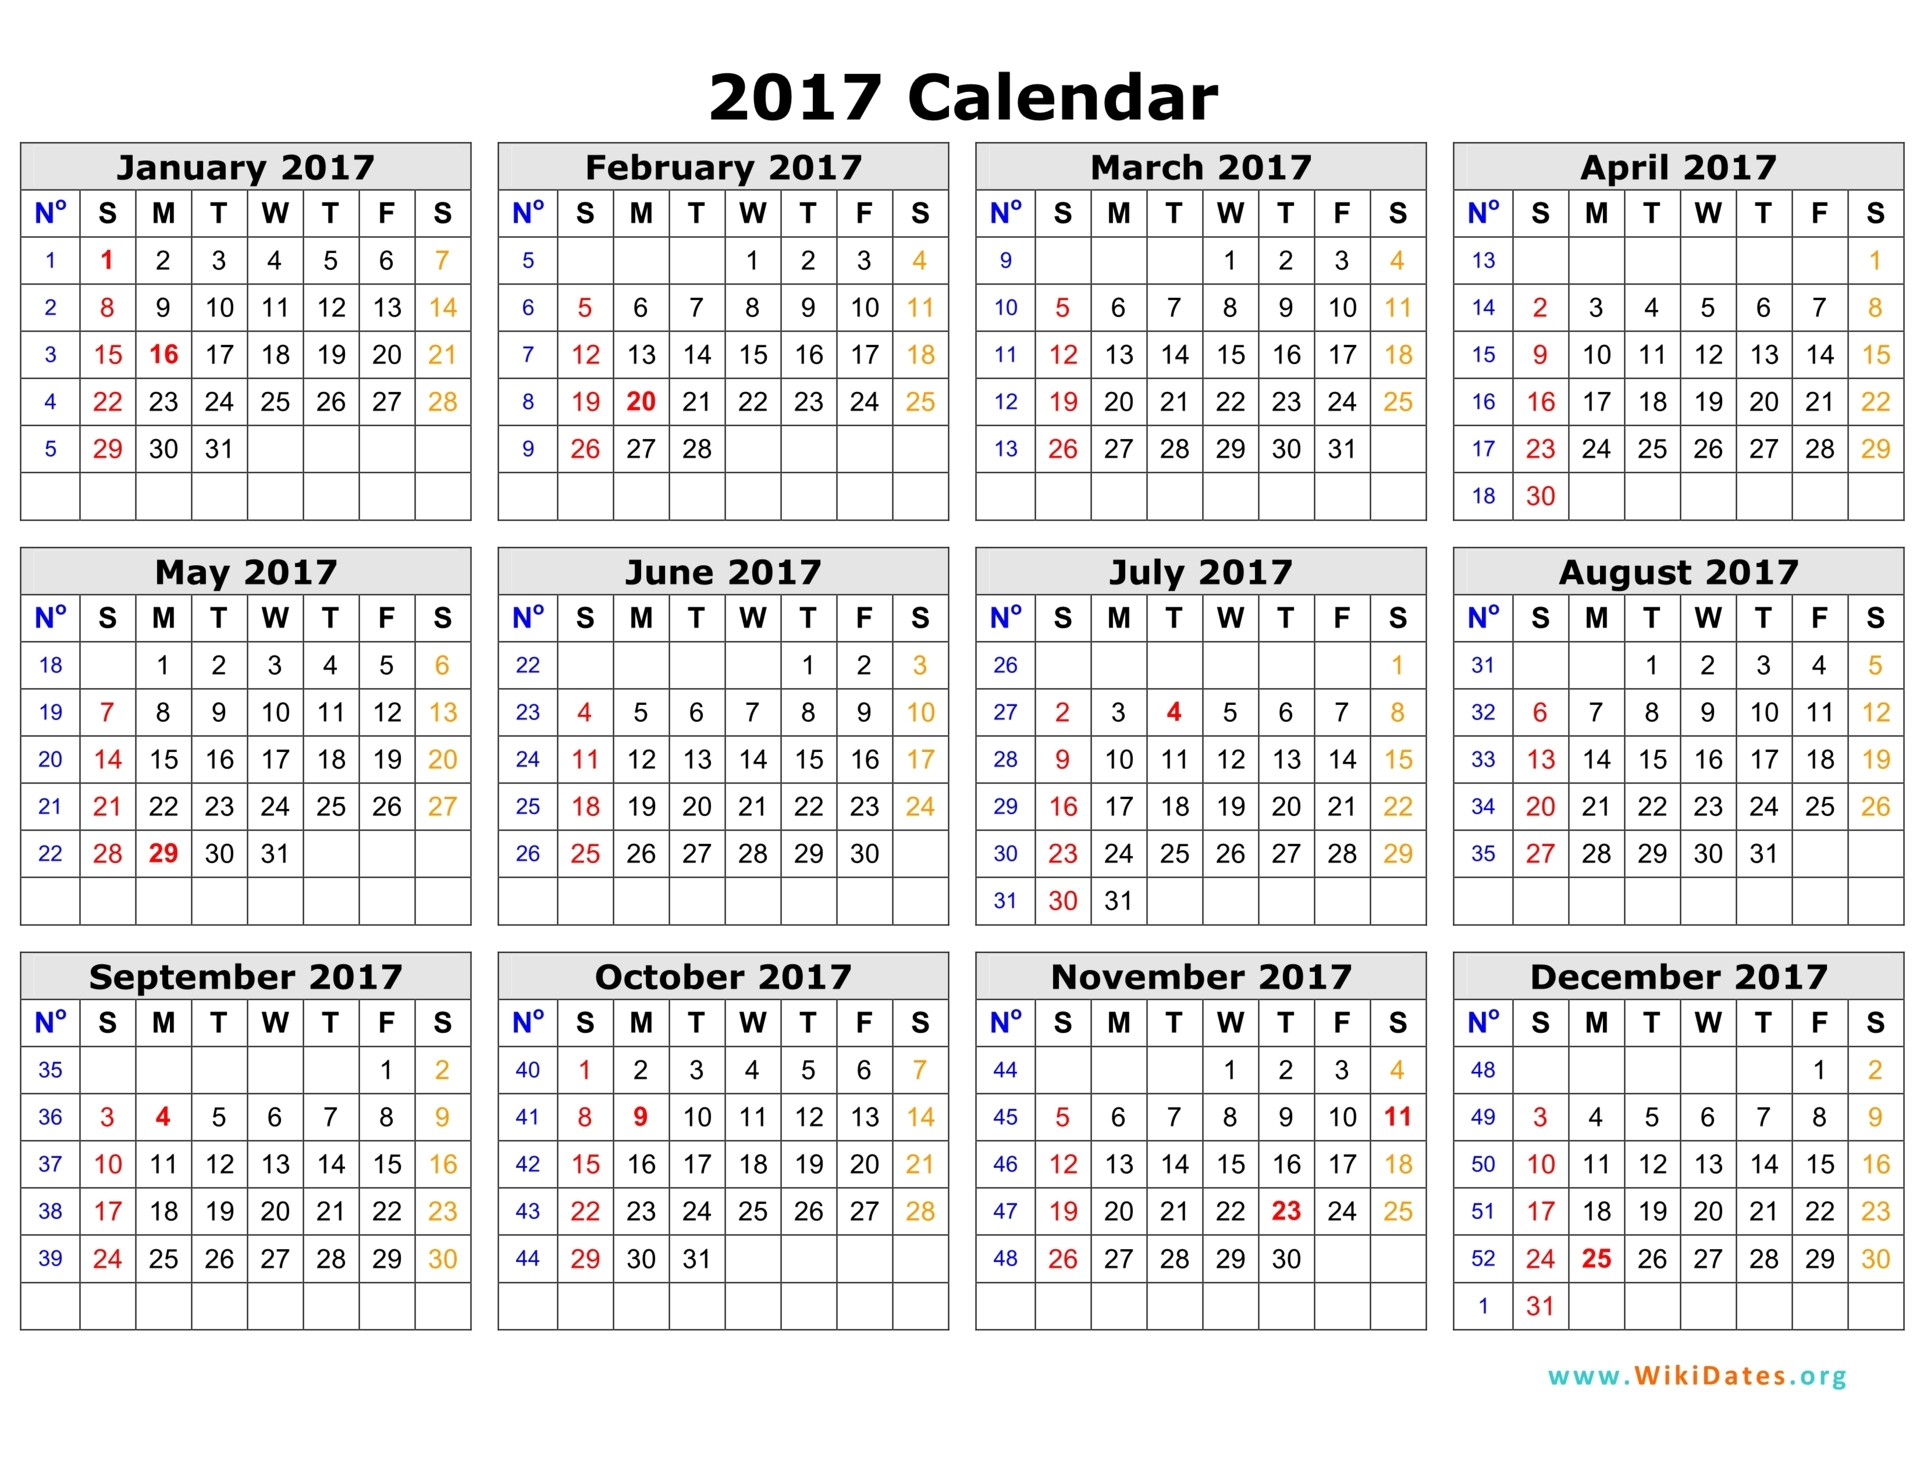 2017 Calendar In Word | 2017 calendar with holidays